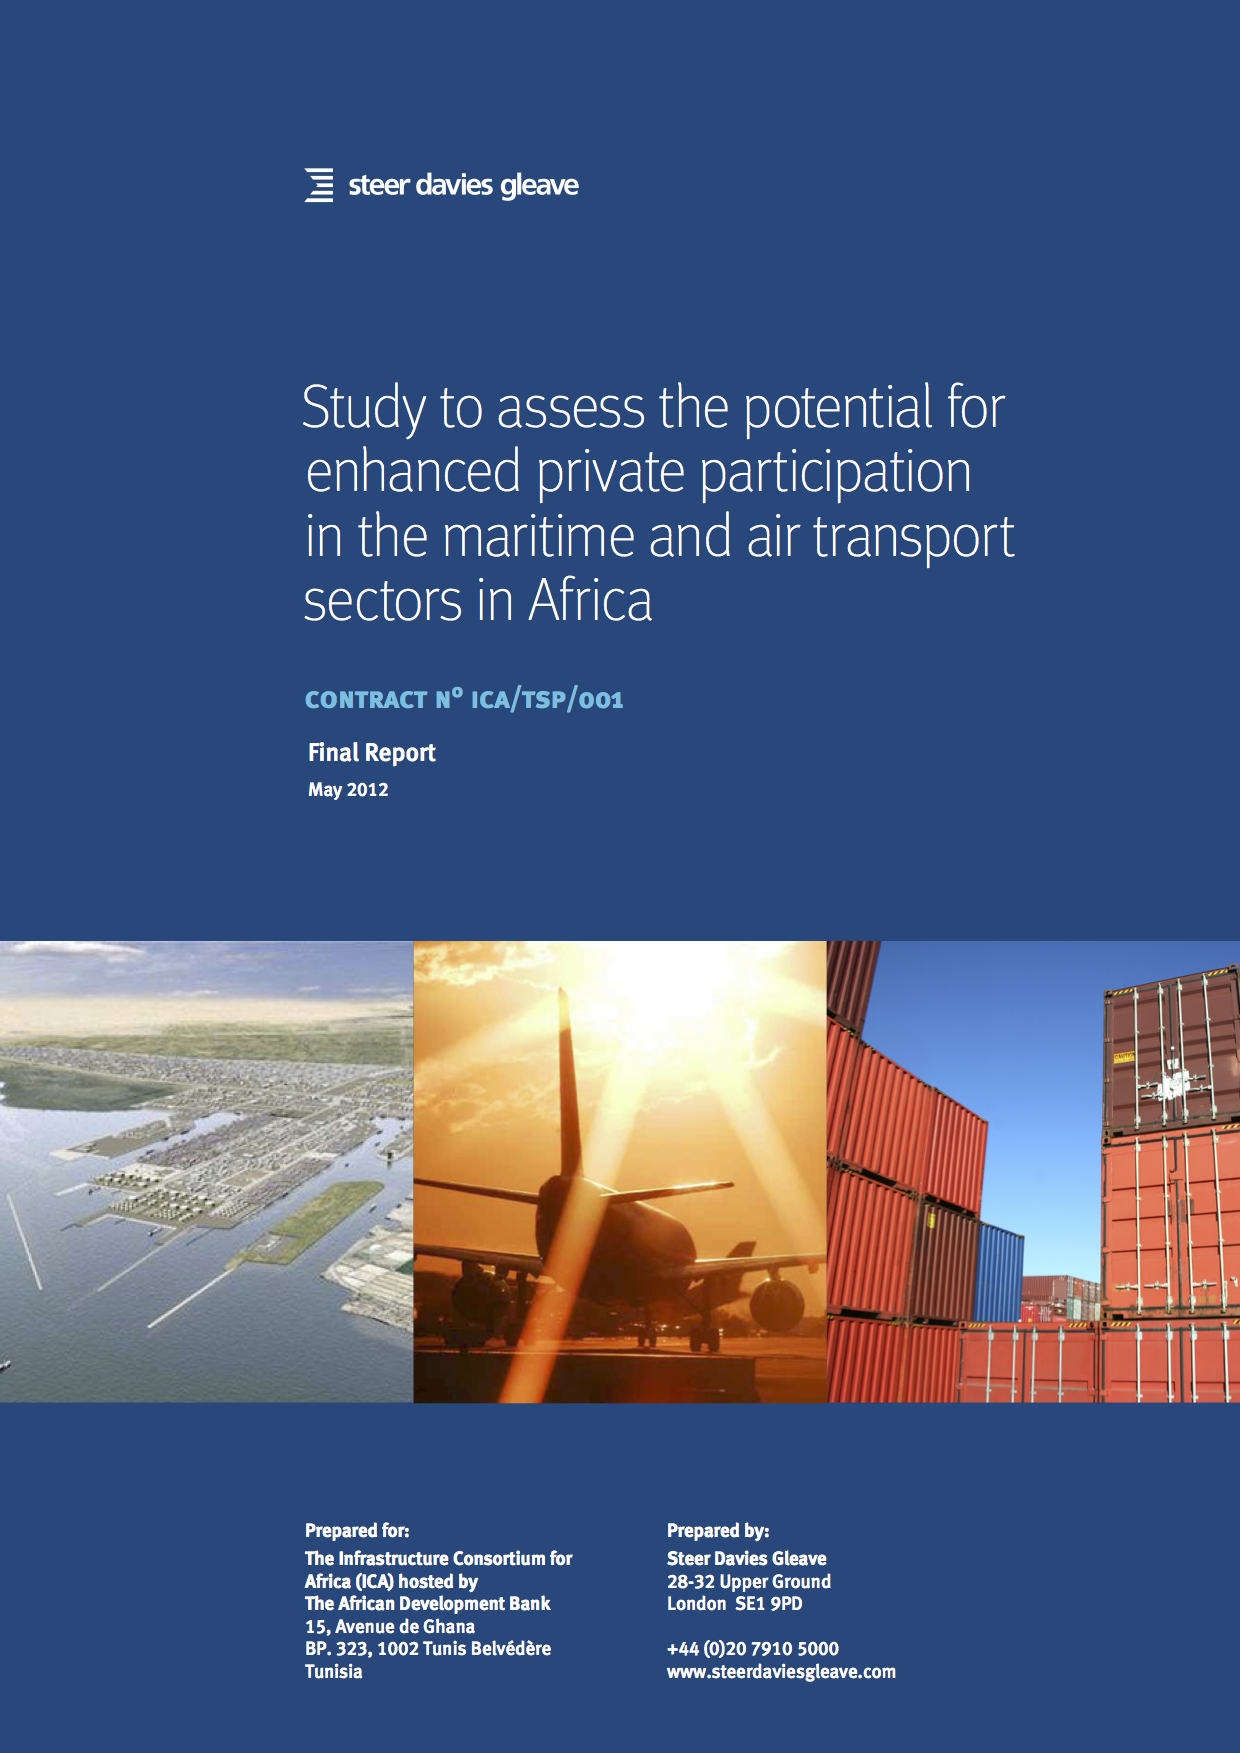 Study to assess the potential for enhanced private participation in the maritime and air transport sectors in Africa